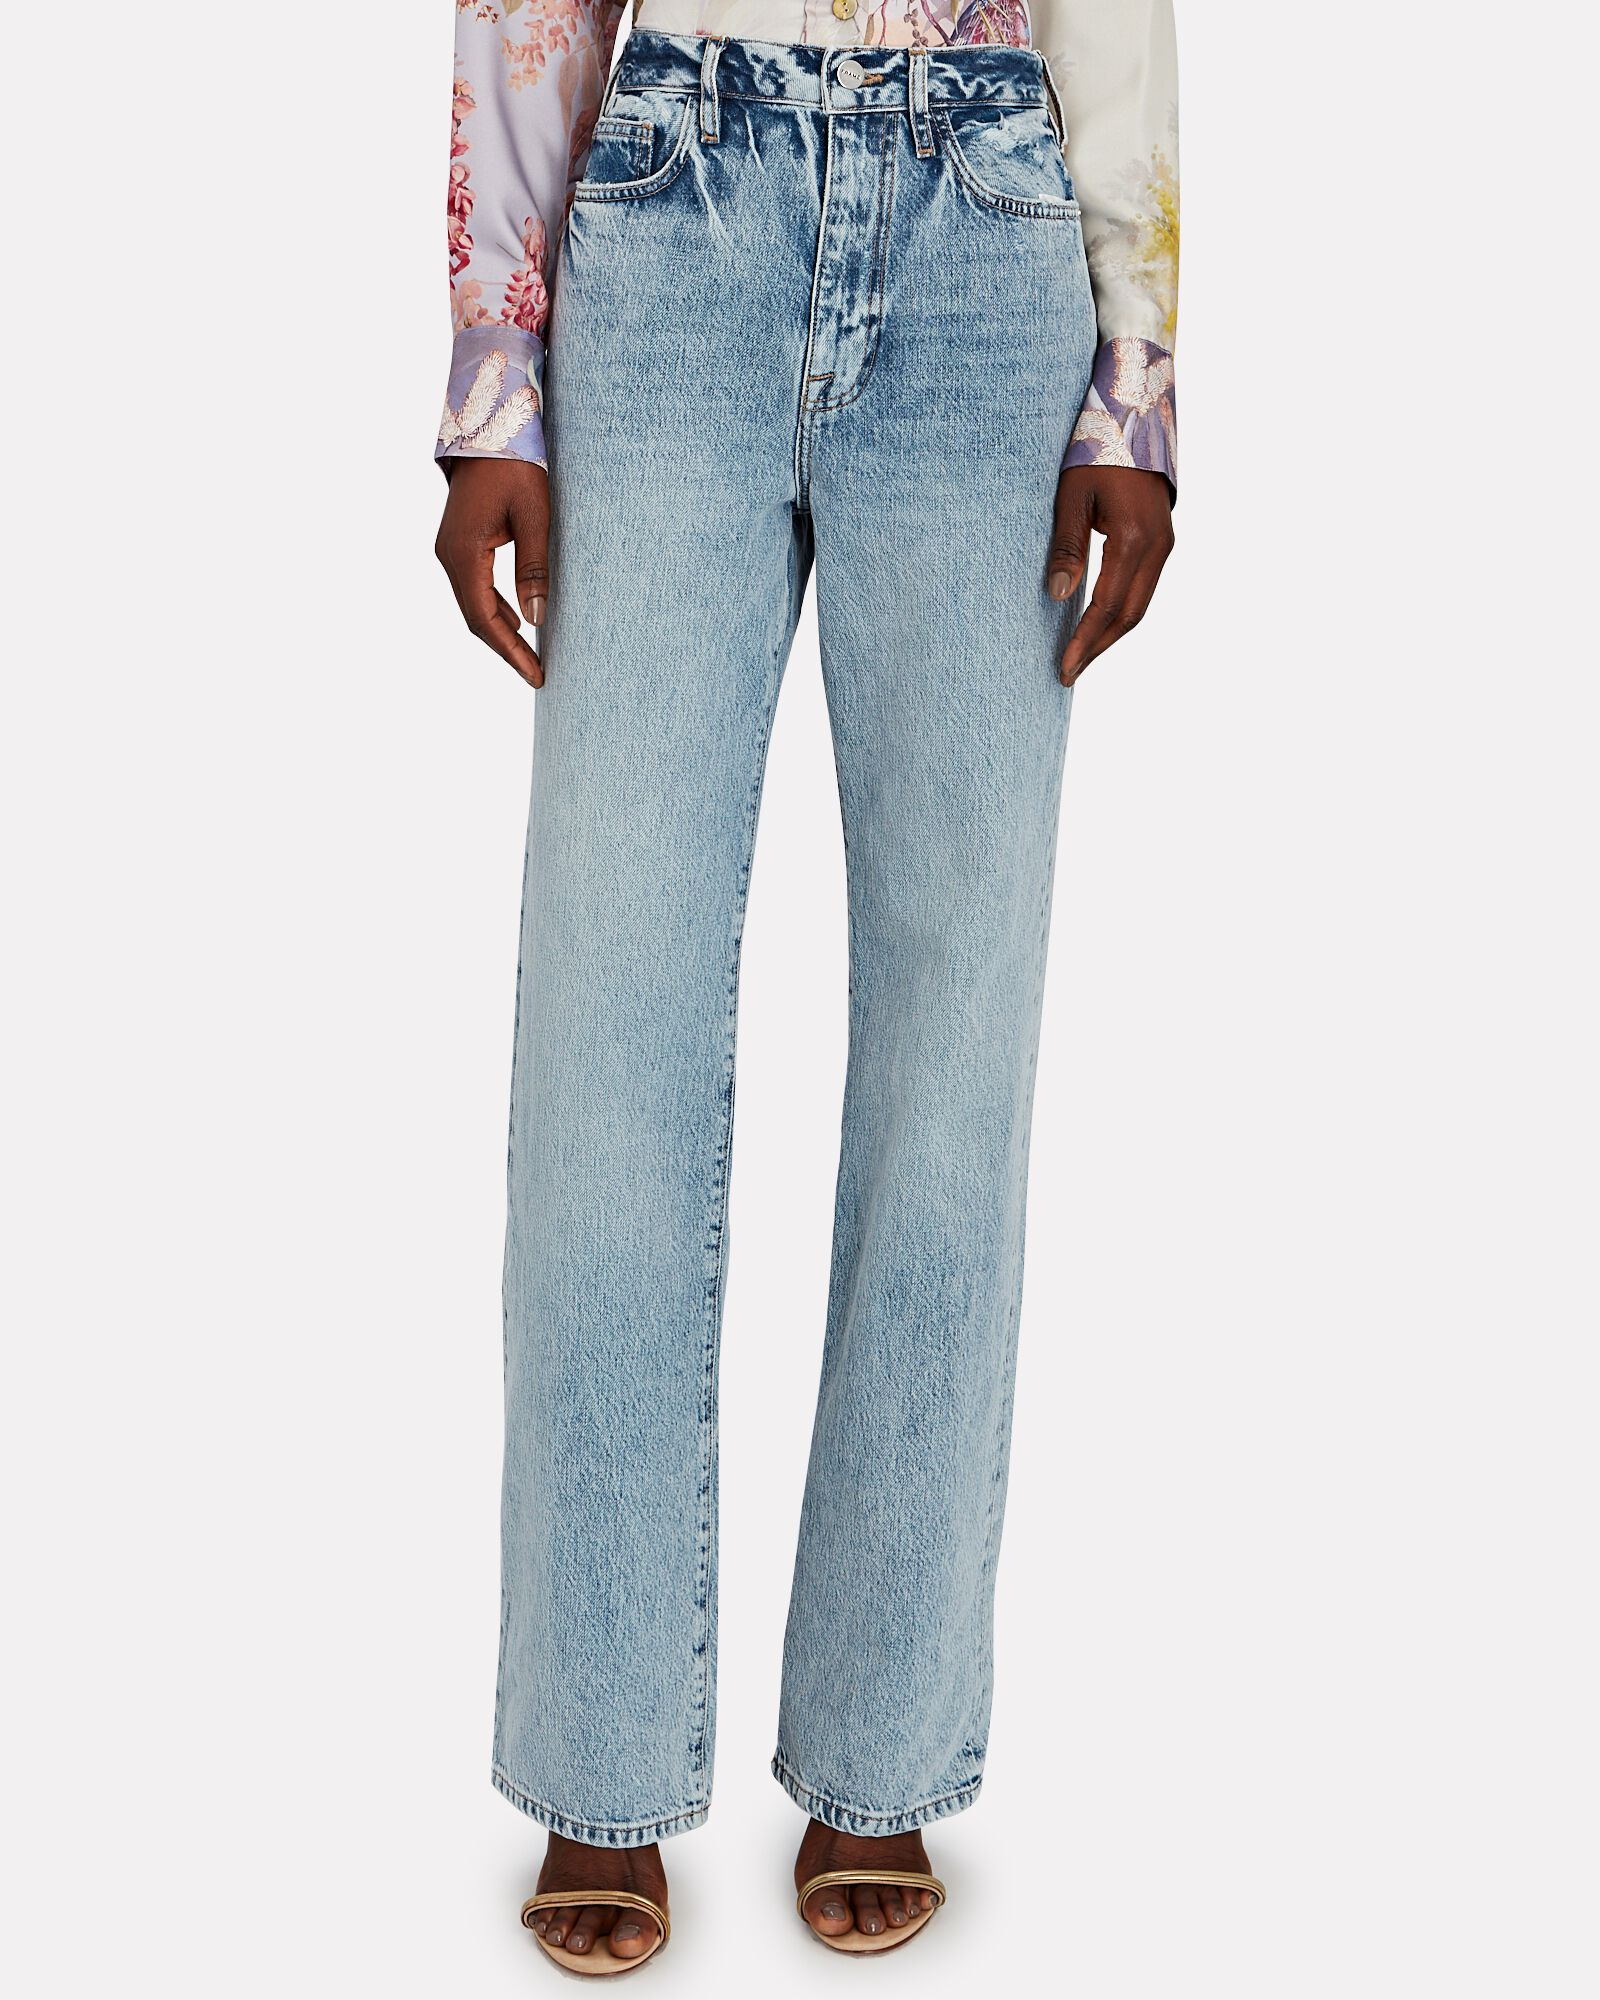 Le Jane Relaxed Straight-Leg Jeans, RICHLAKE, hi-res